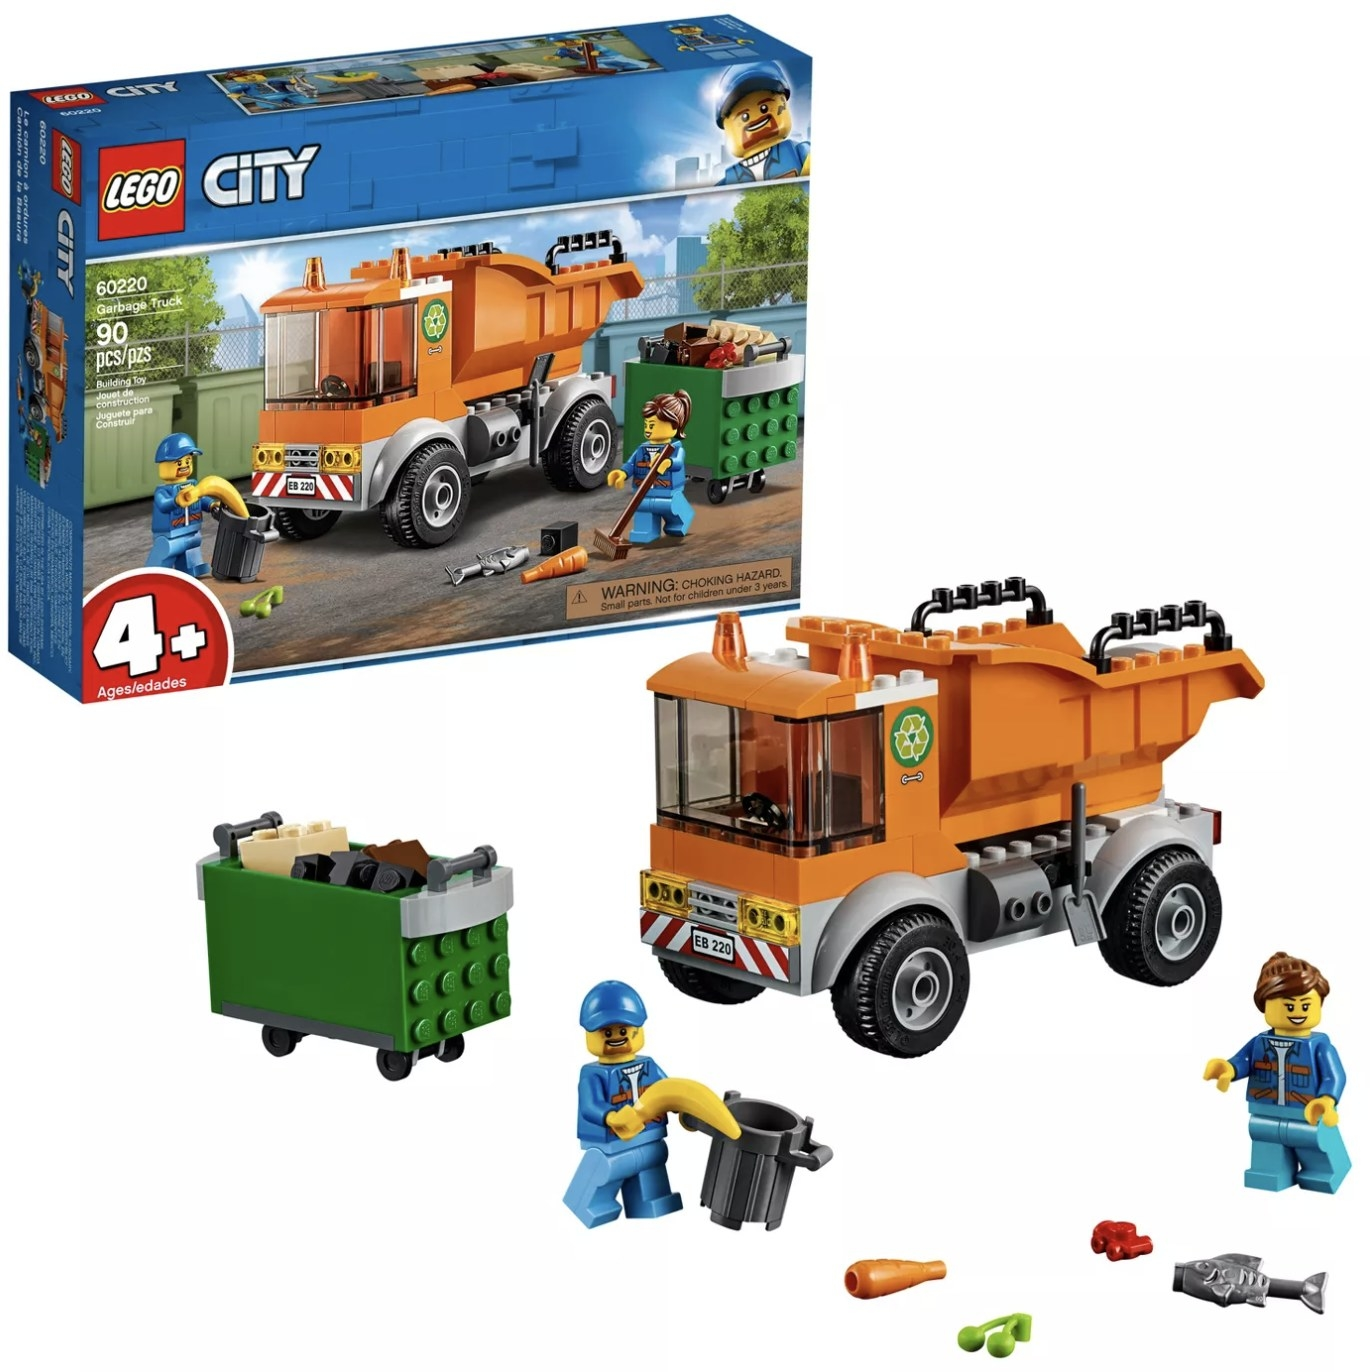 A LEGO City box with the garbage truck, bin, and workers next to it